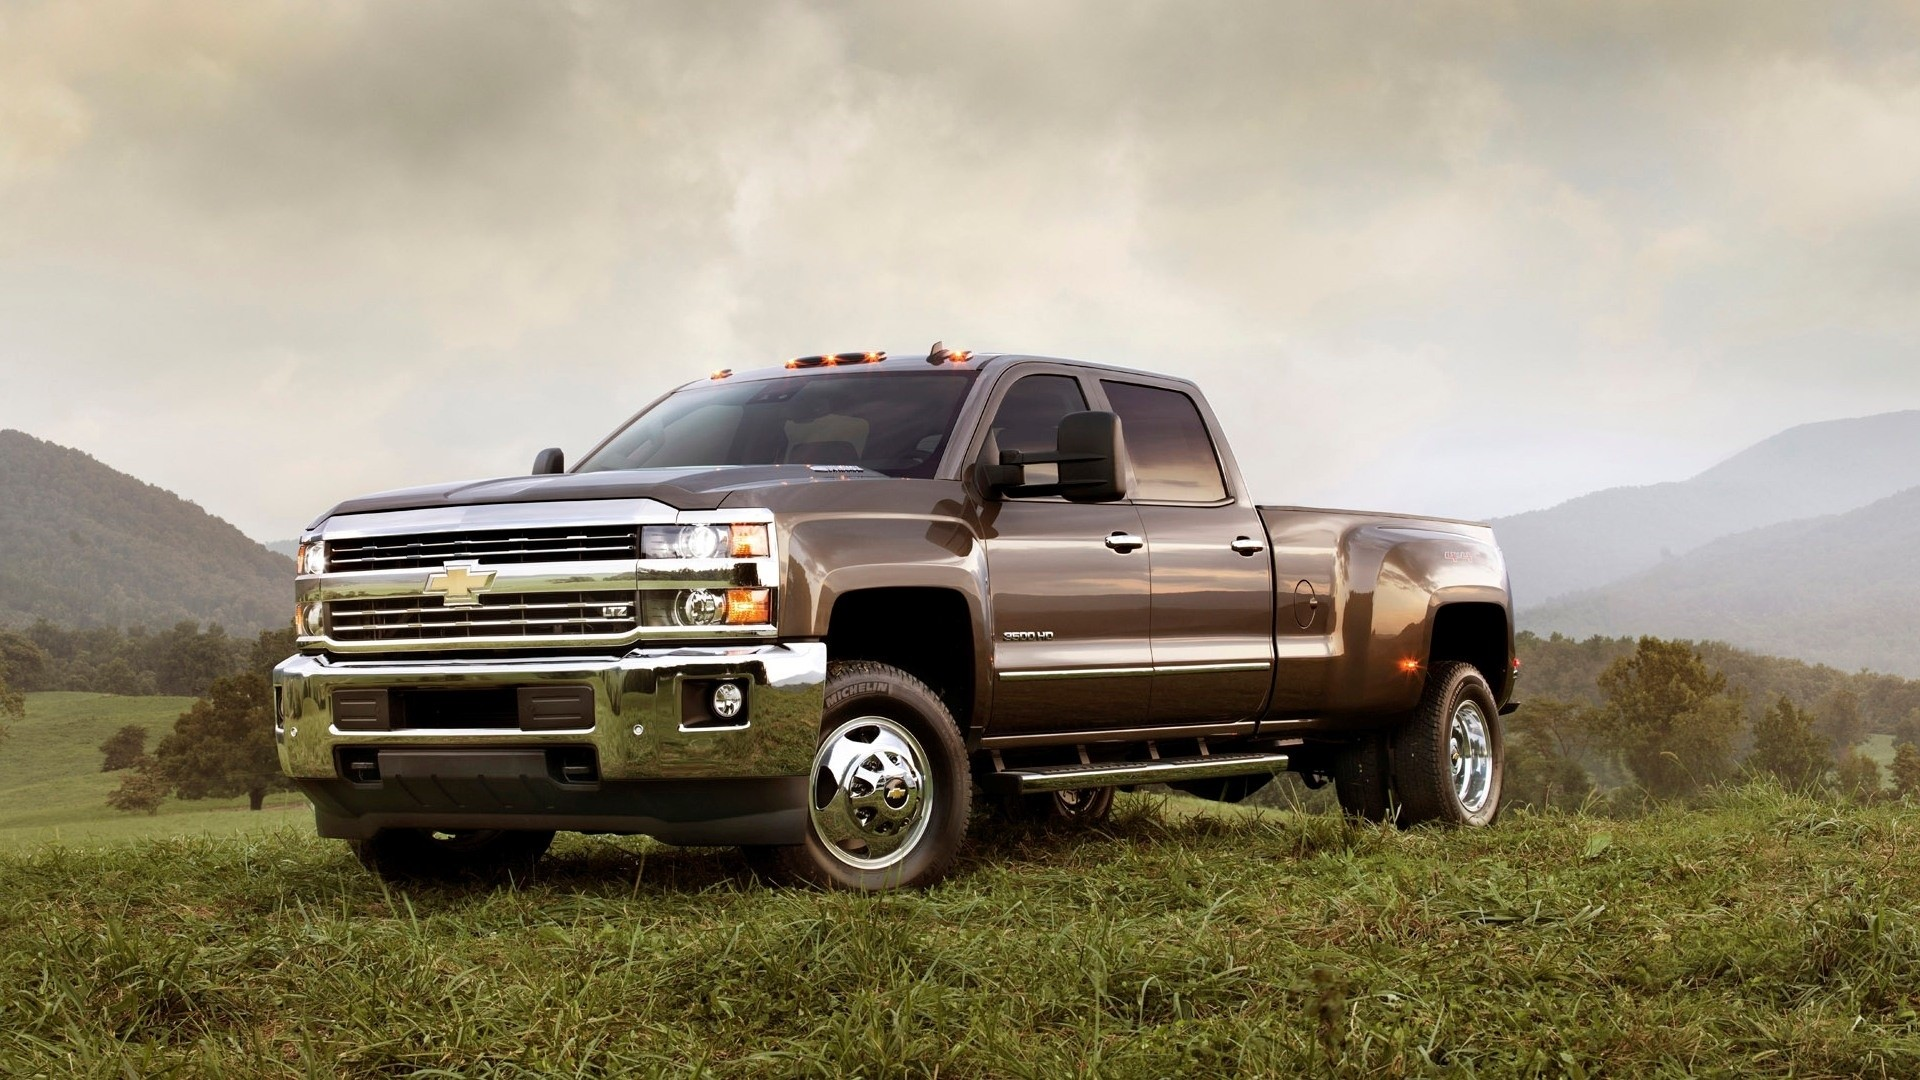 Silverado full hd wallpaper for laptop